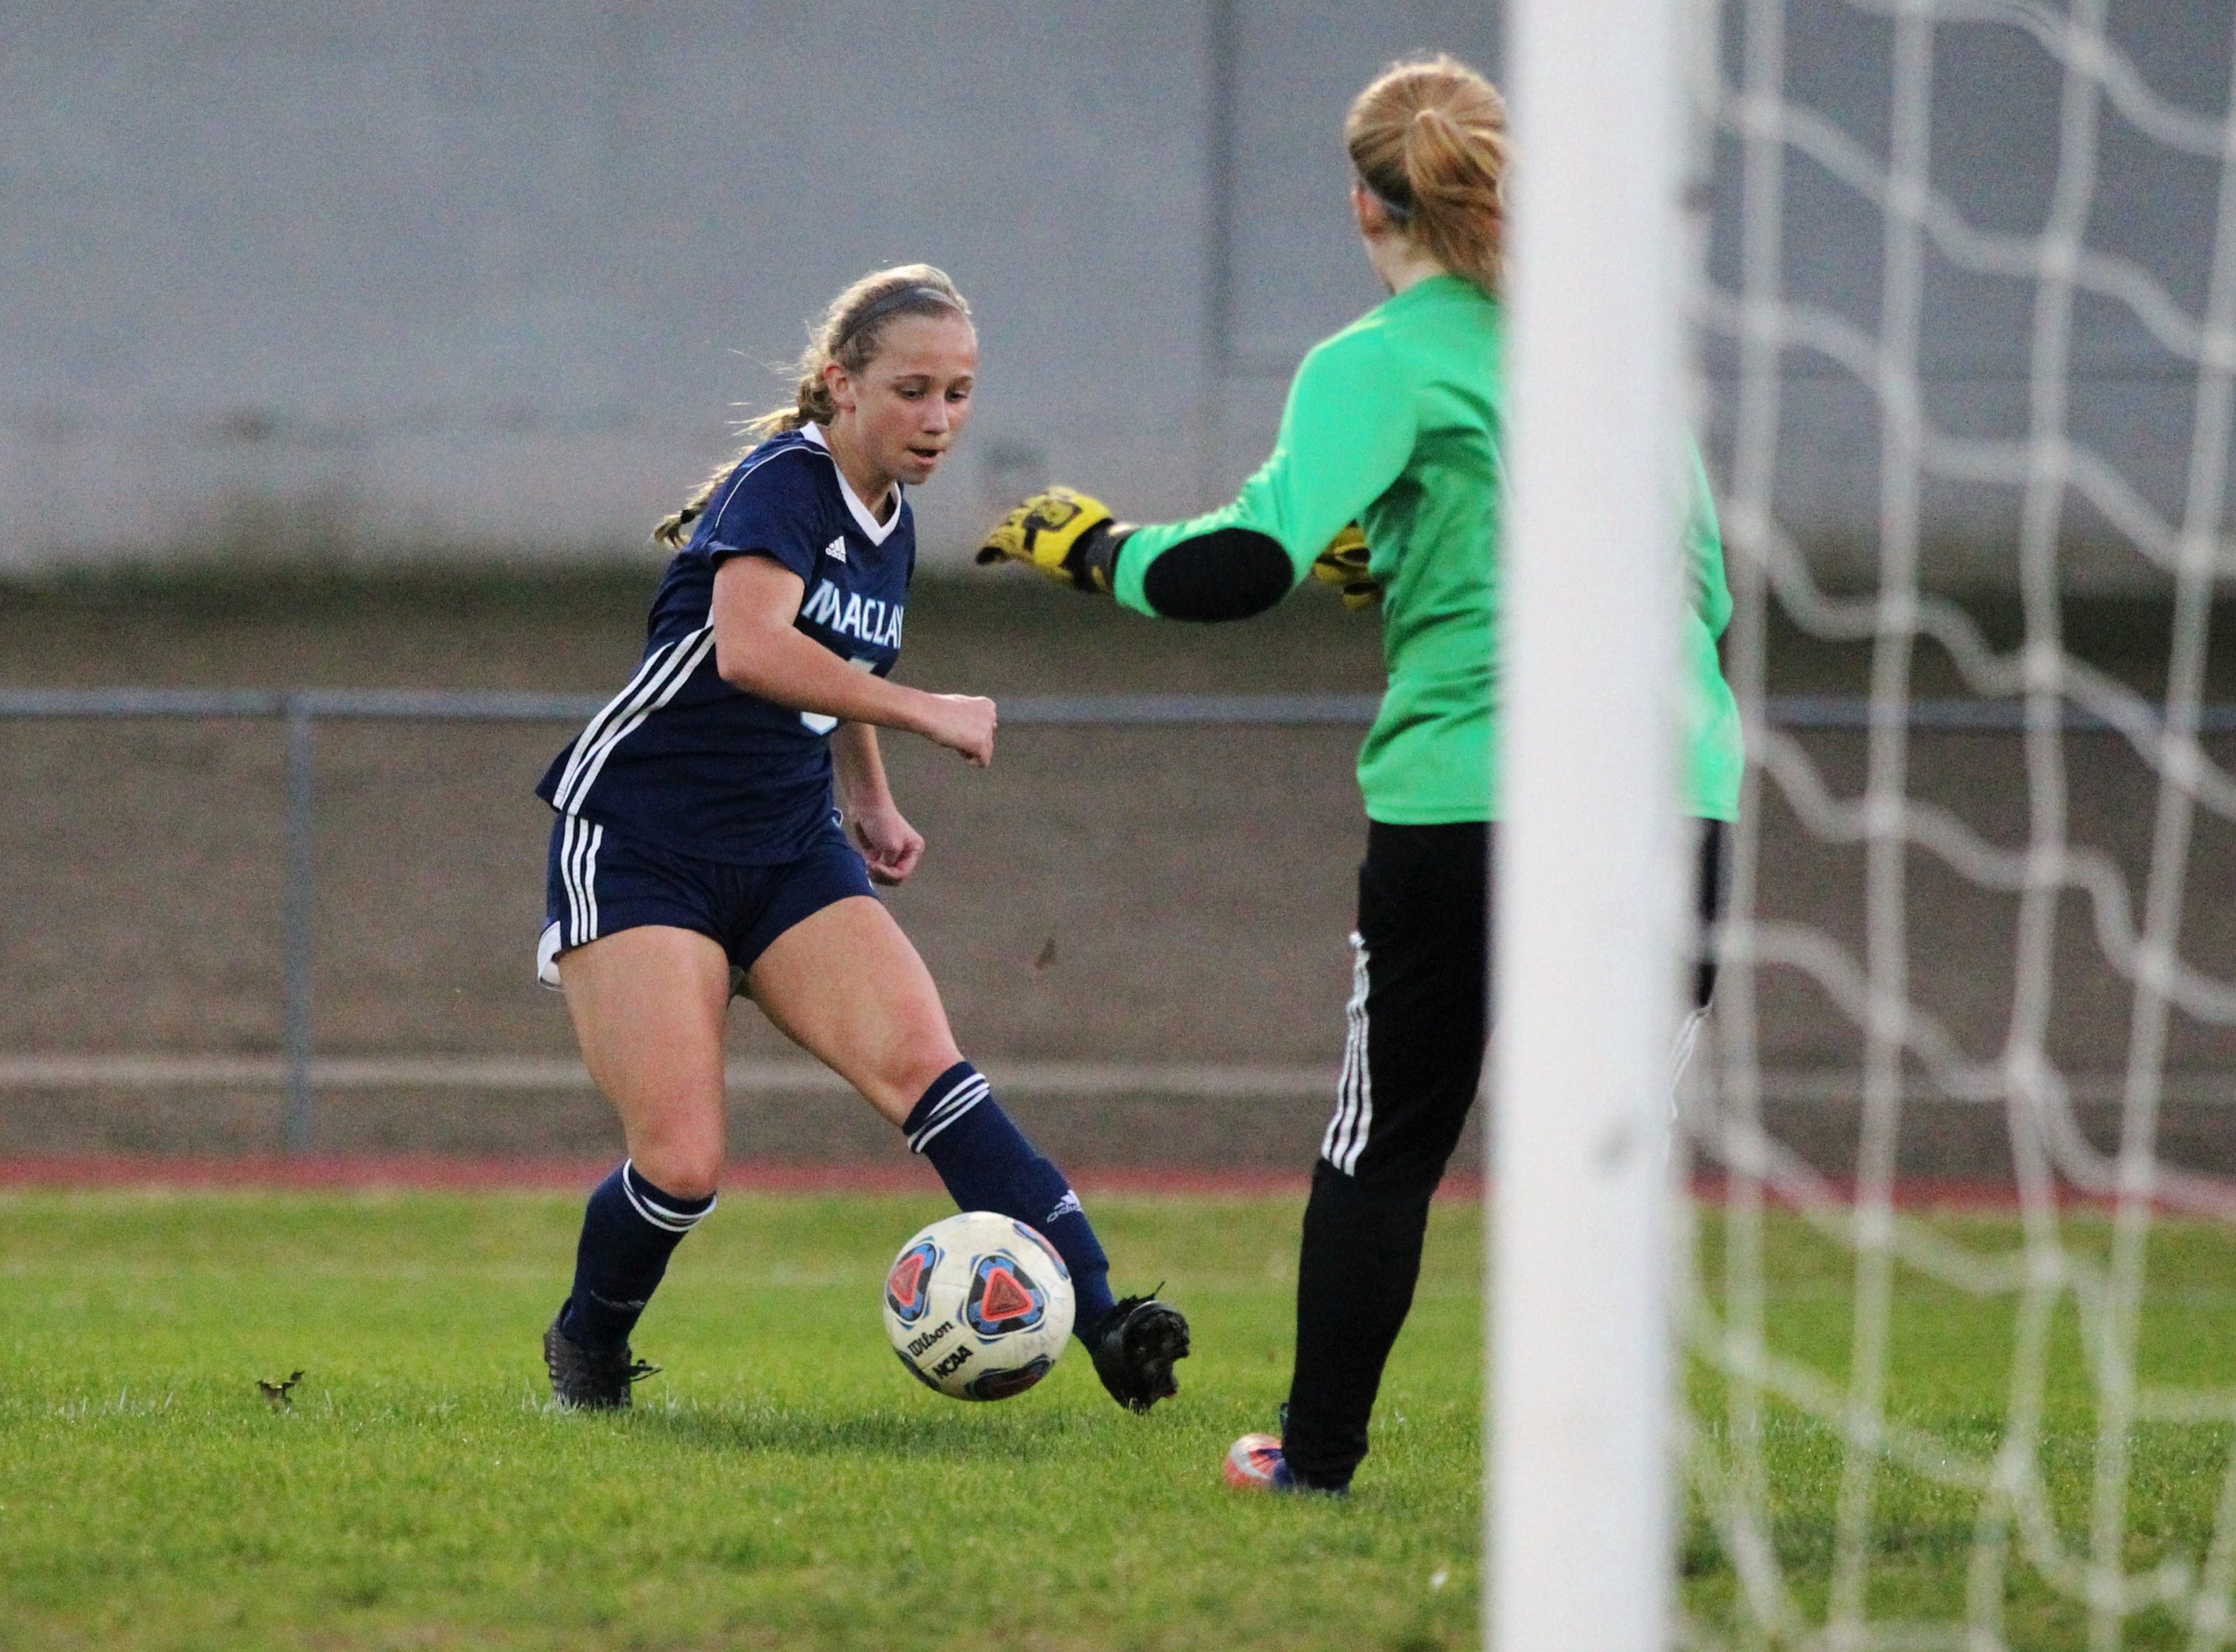 Maclay's Katelyn Dessi sends a pass across the face of goal as Maclay's girls soccer team beat St. Joseph Academy 4-0 in a Region 1-1A quarterfinal on Jan. 5, 2019.